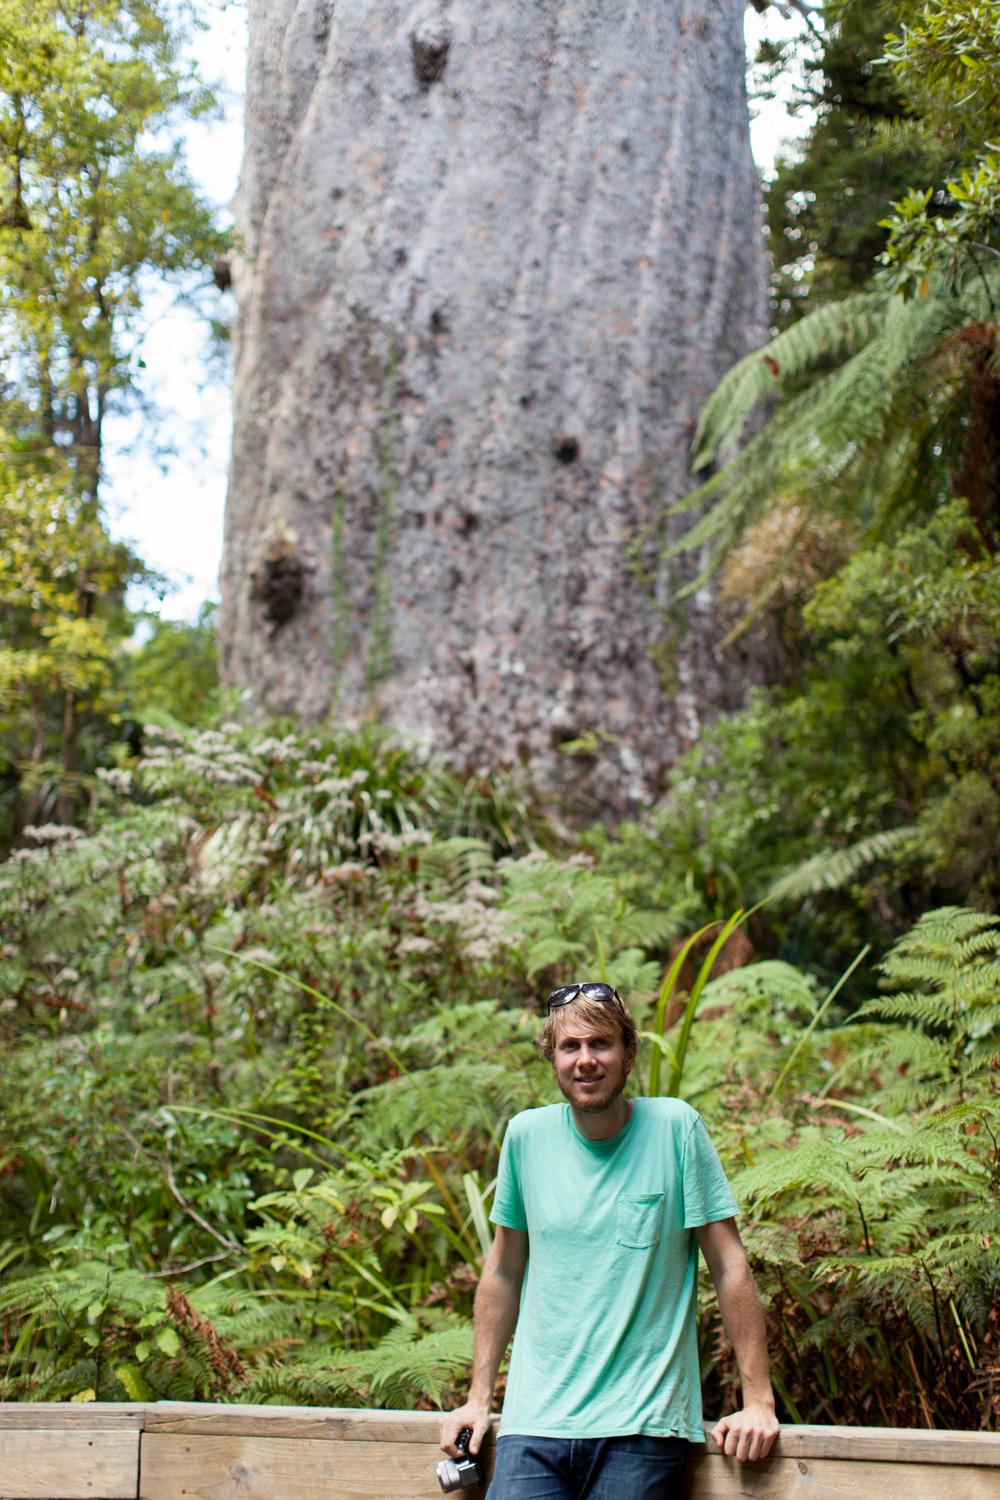 The biggest tree in New Zealand... and it is HUGE.